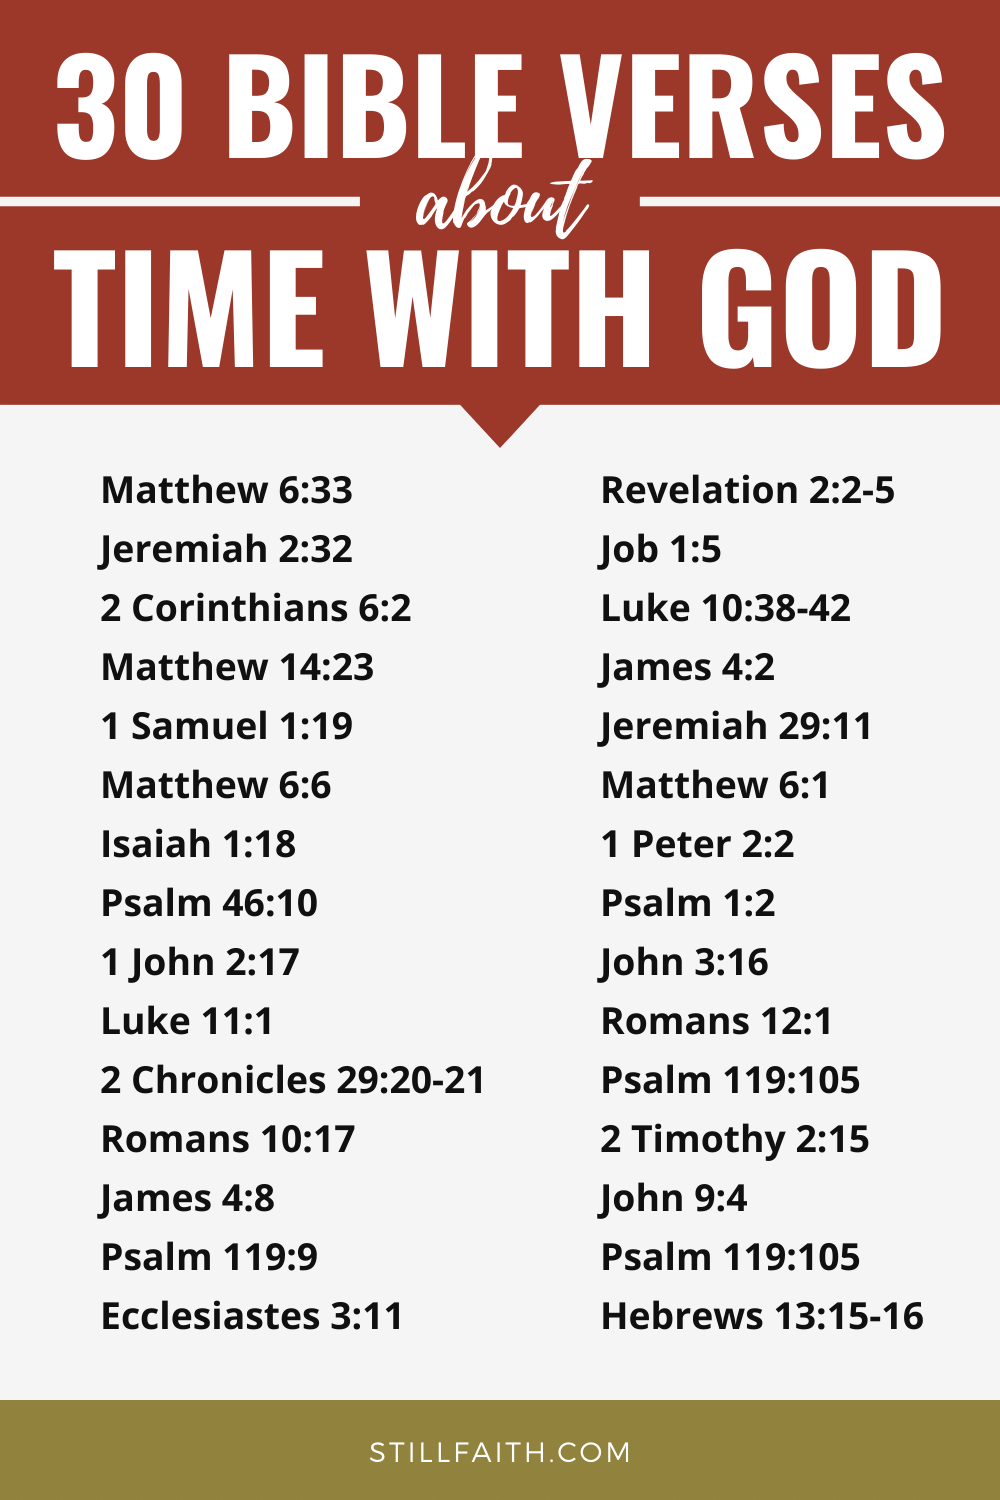 127 Bible Verses about Time with God